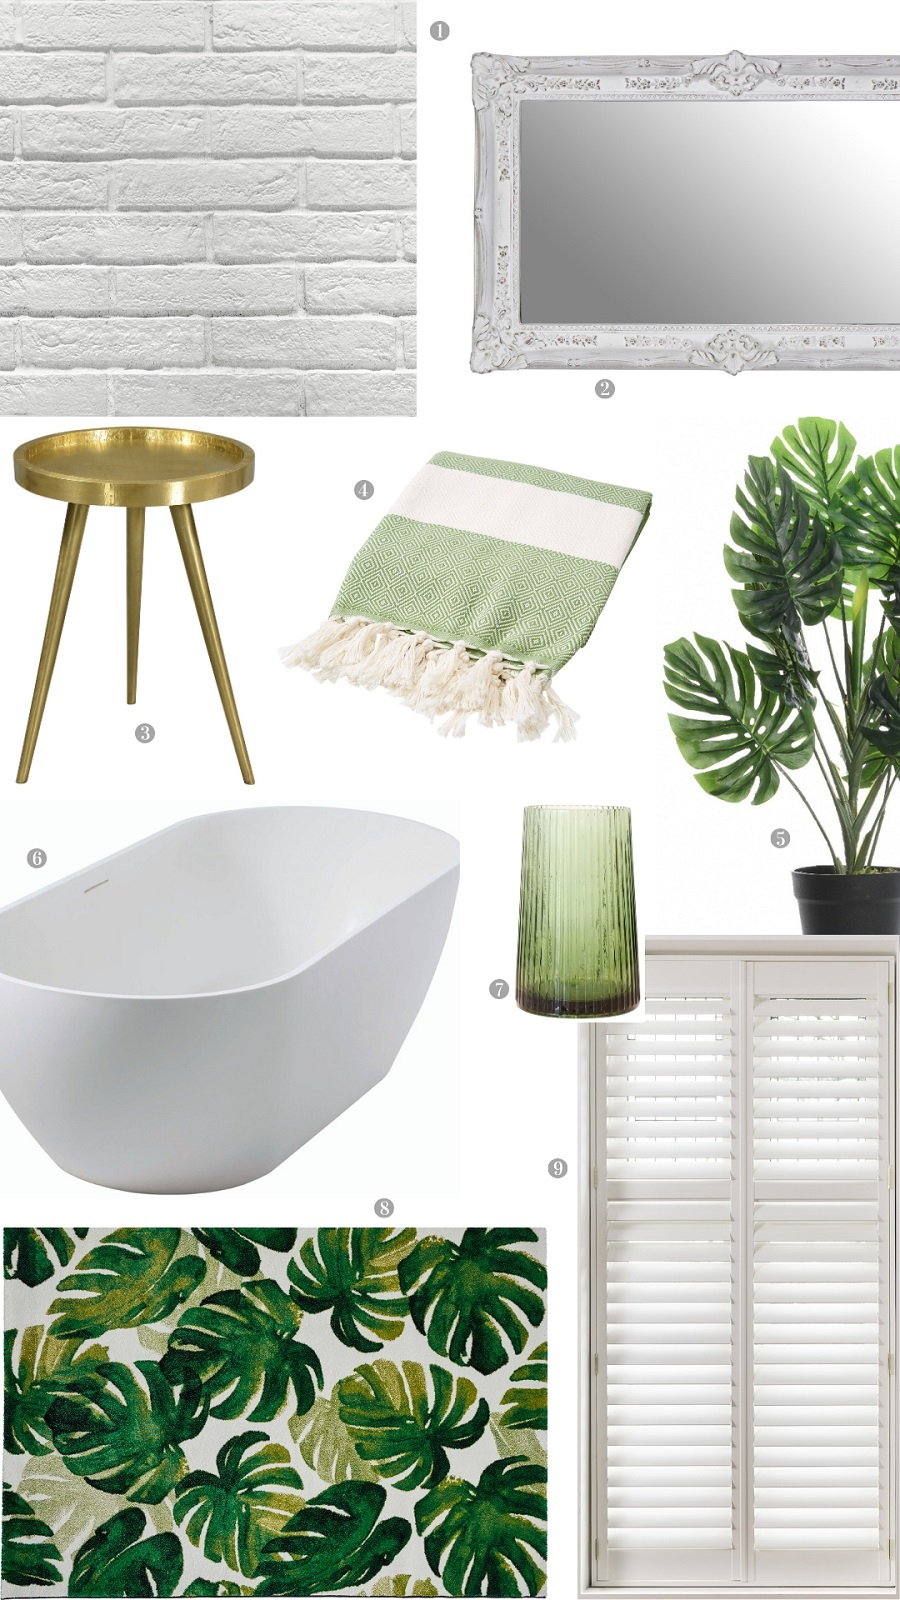 A Modern Country Bathroom With Touches of Leafy Green